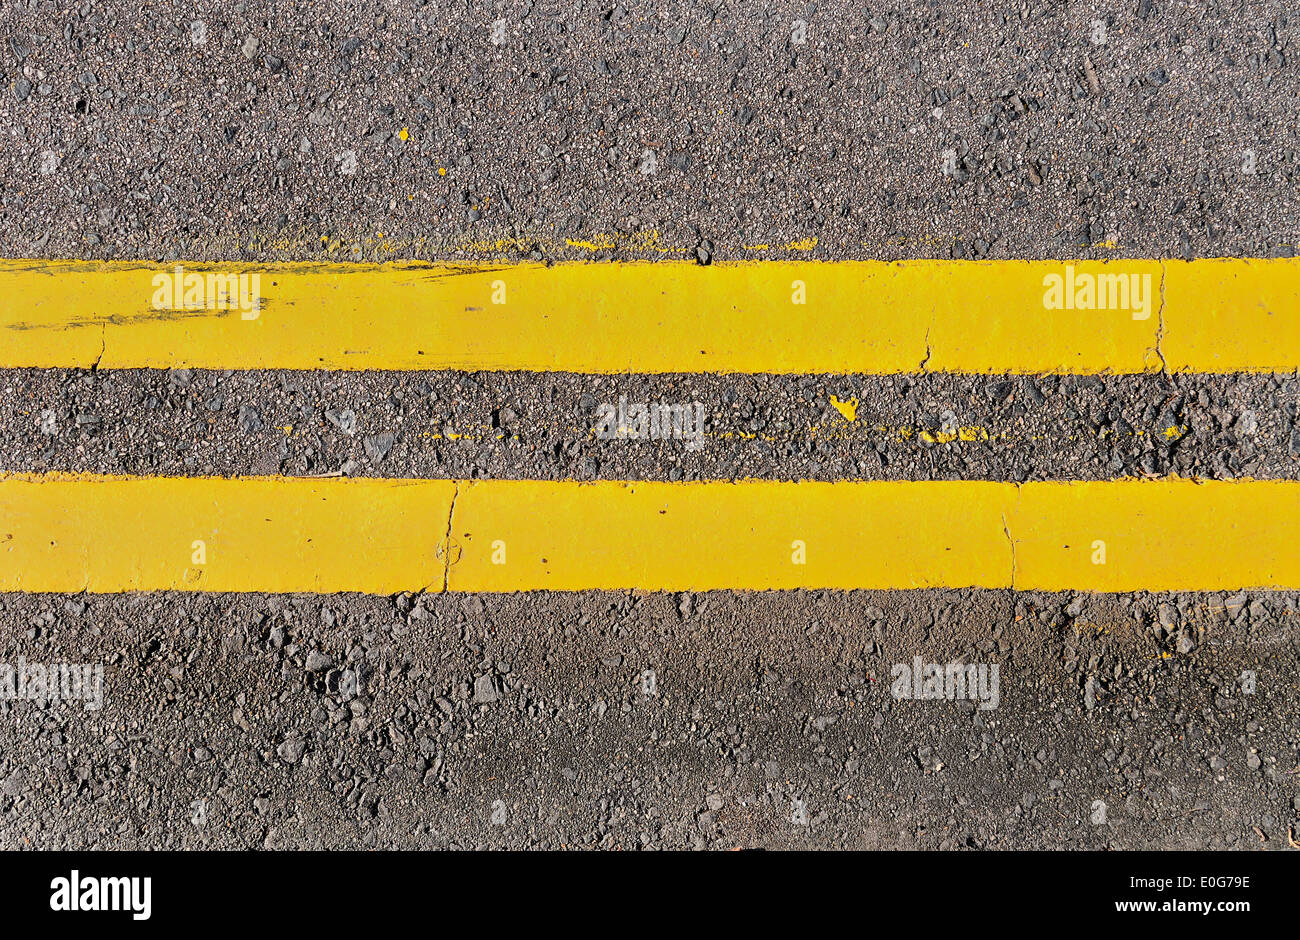 Double yellow lines running horizontally on an asphalt road. - Stock Image